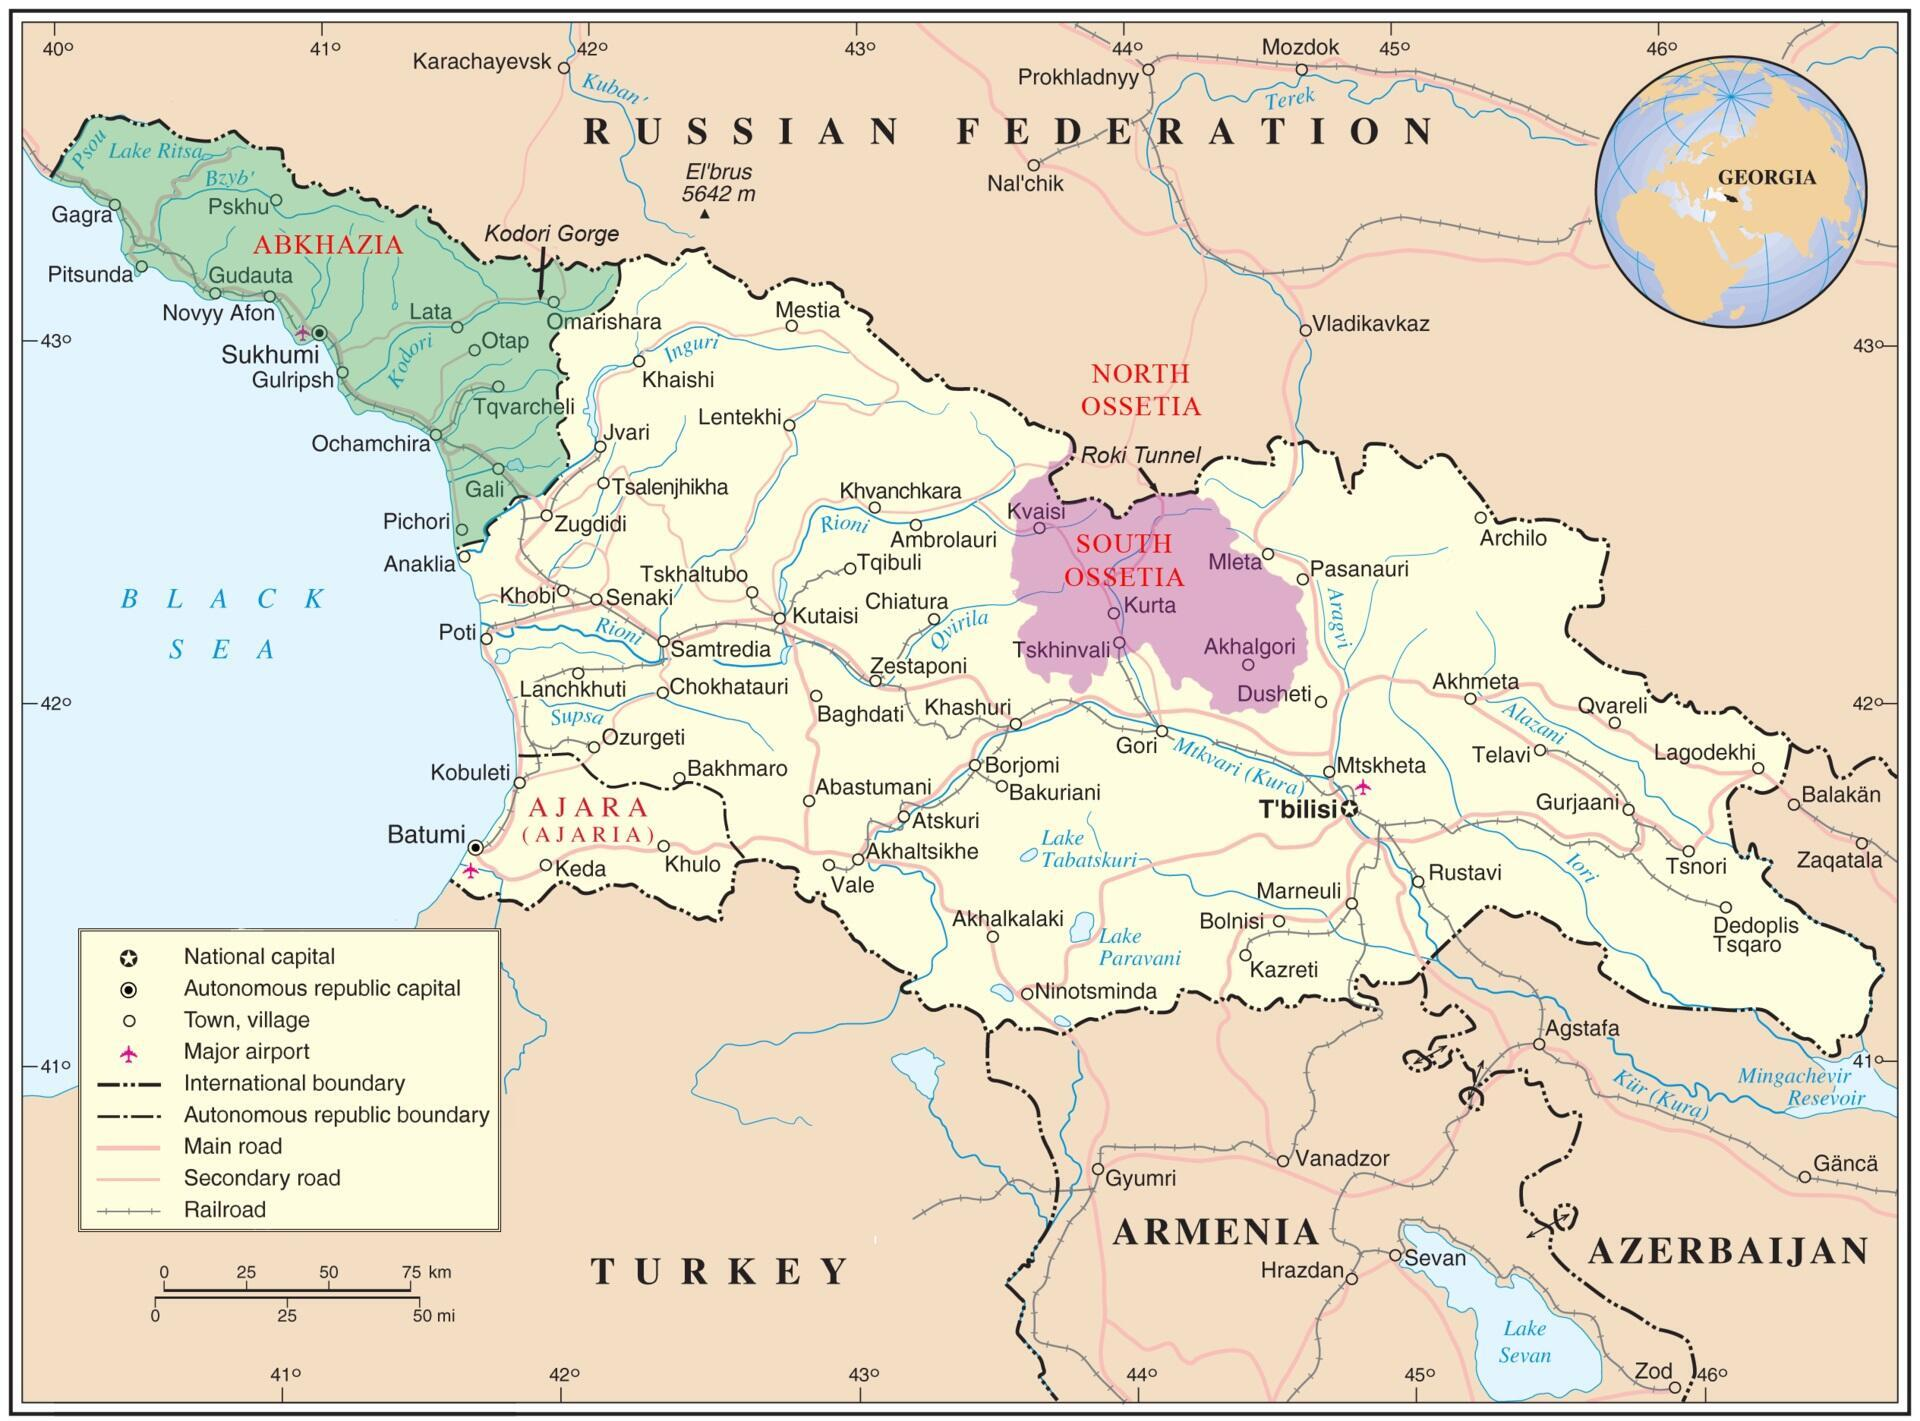 Map of Georgia with Abkhazia (in green) and South Ossetia (in purple)